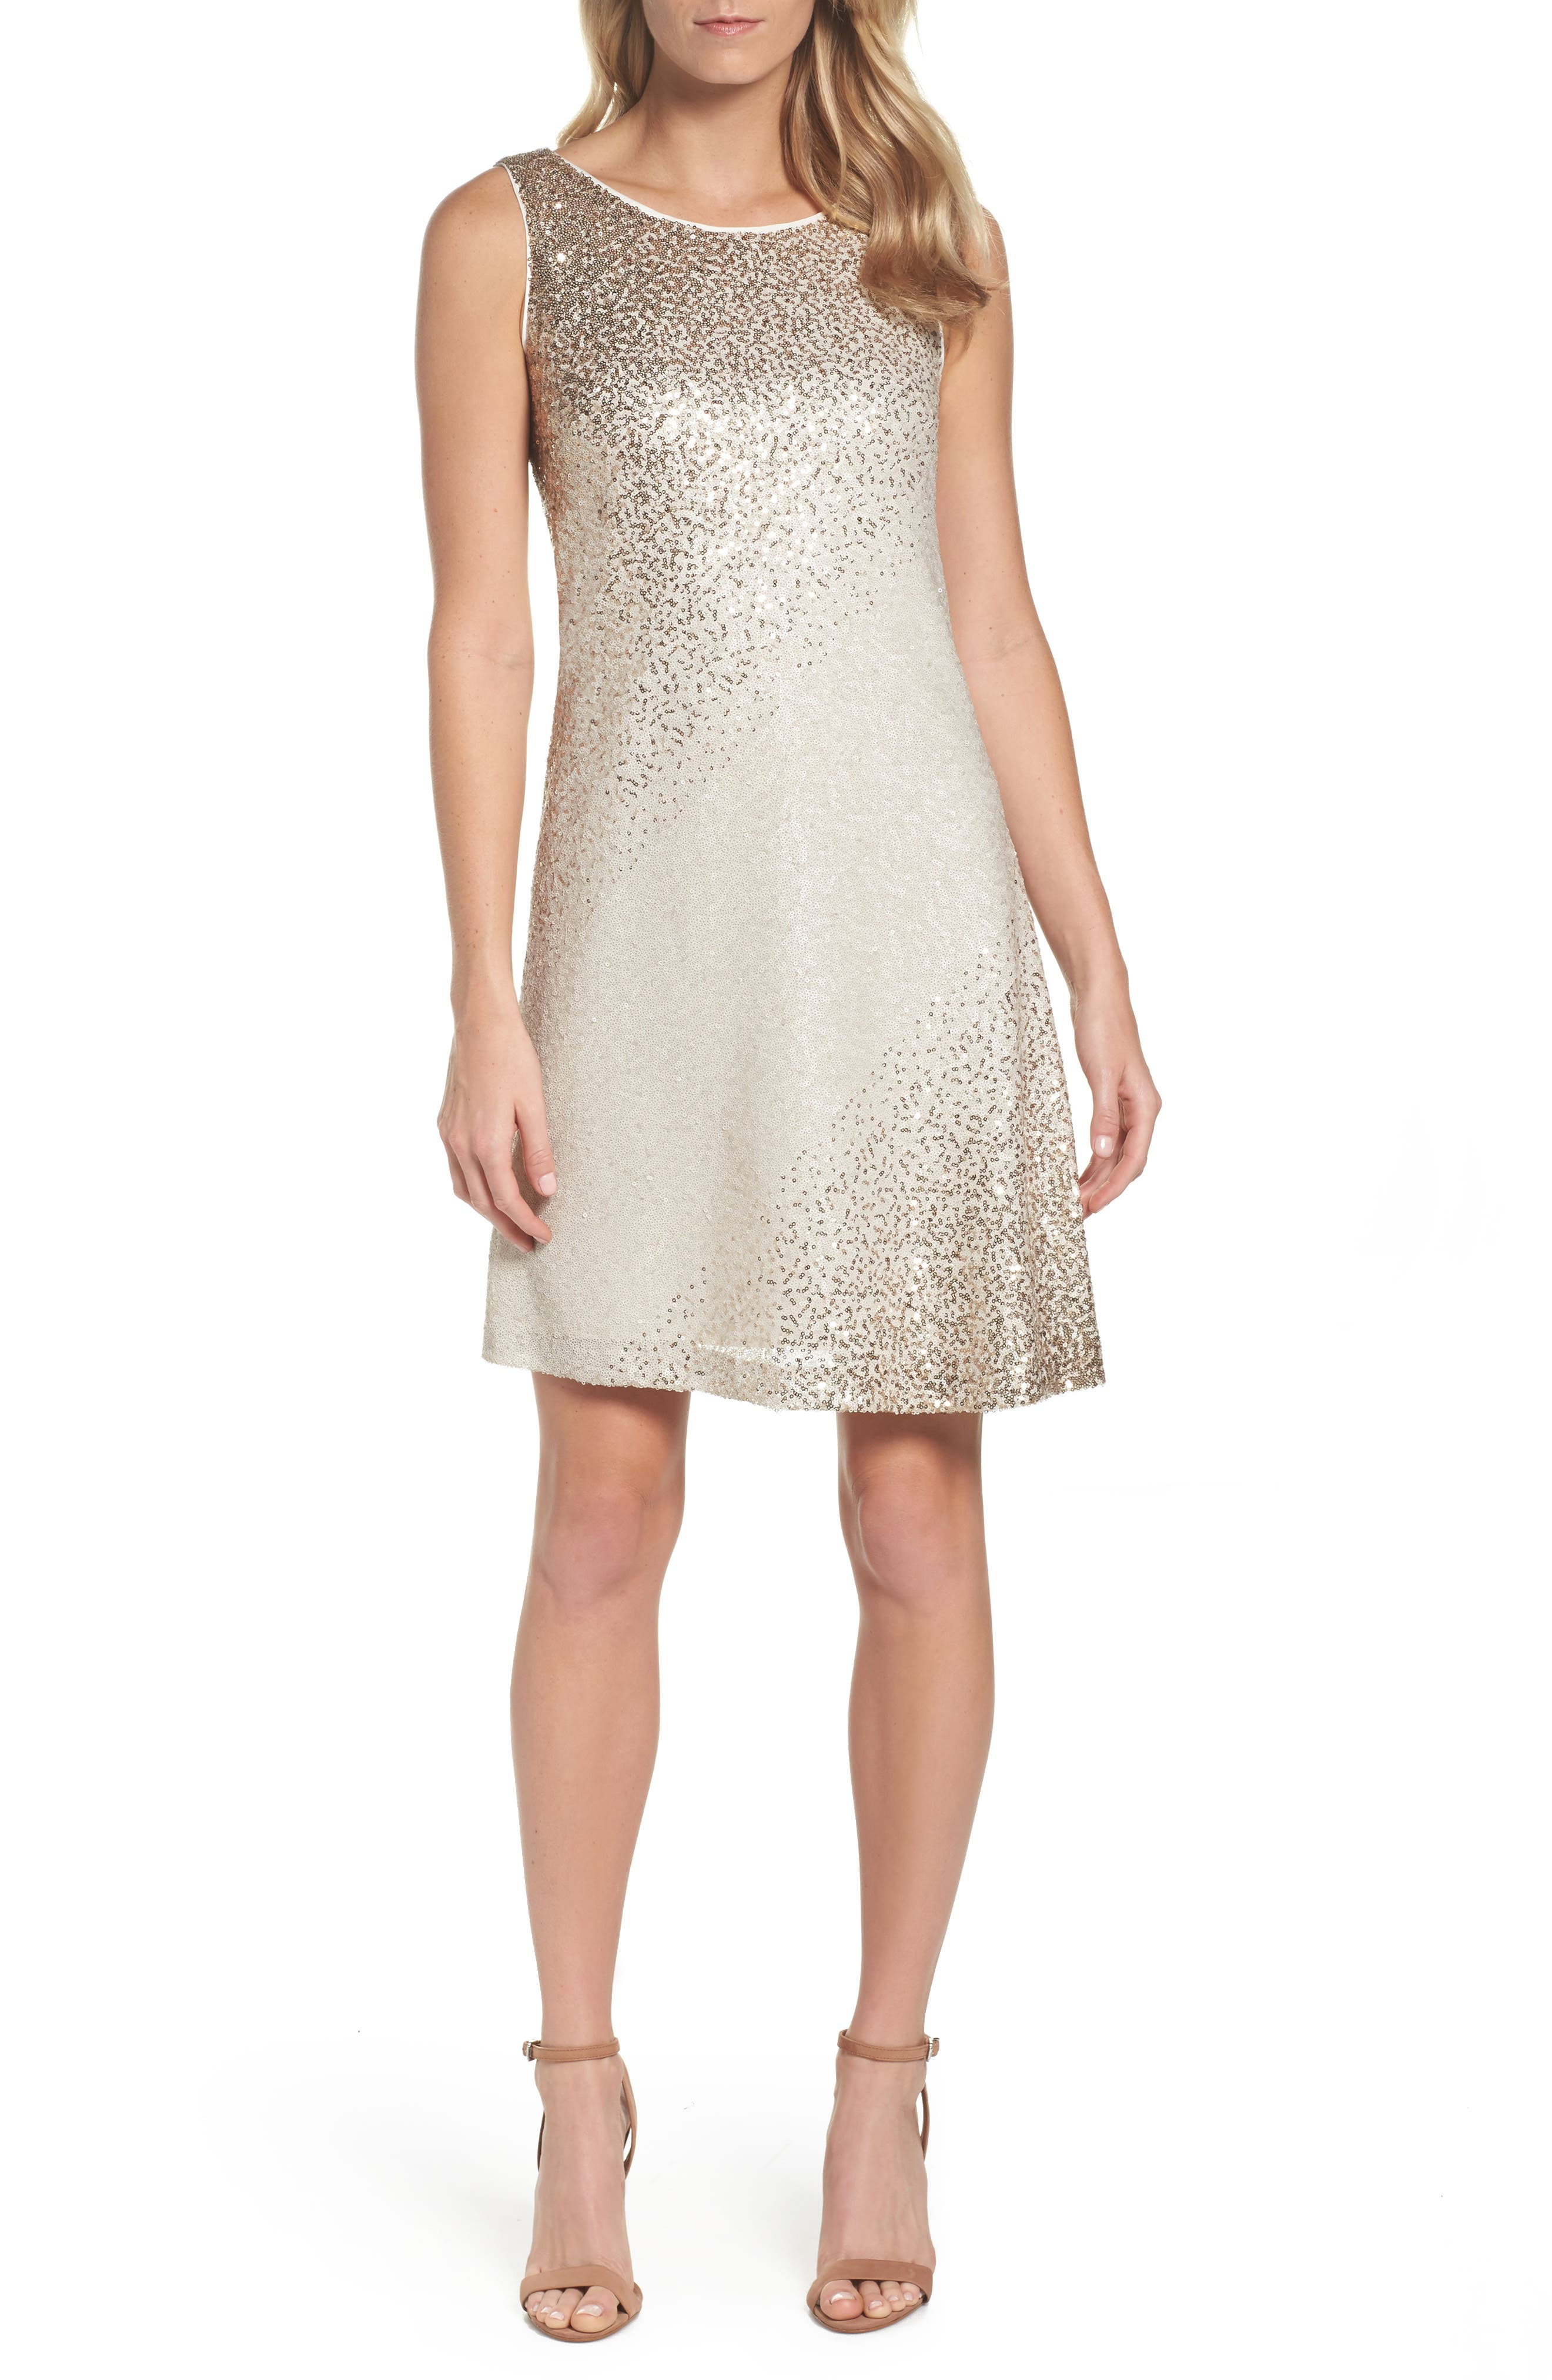 Sequin Shift Dress,                             Main thumbnail 1, color,                             Ivory/ Gold